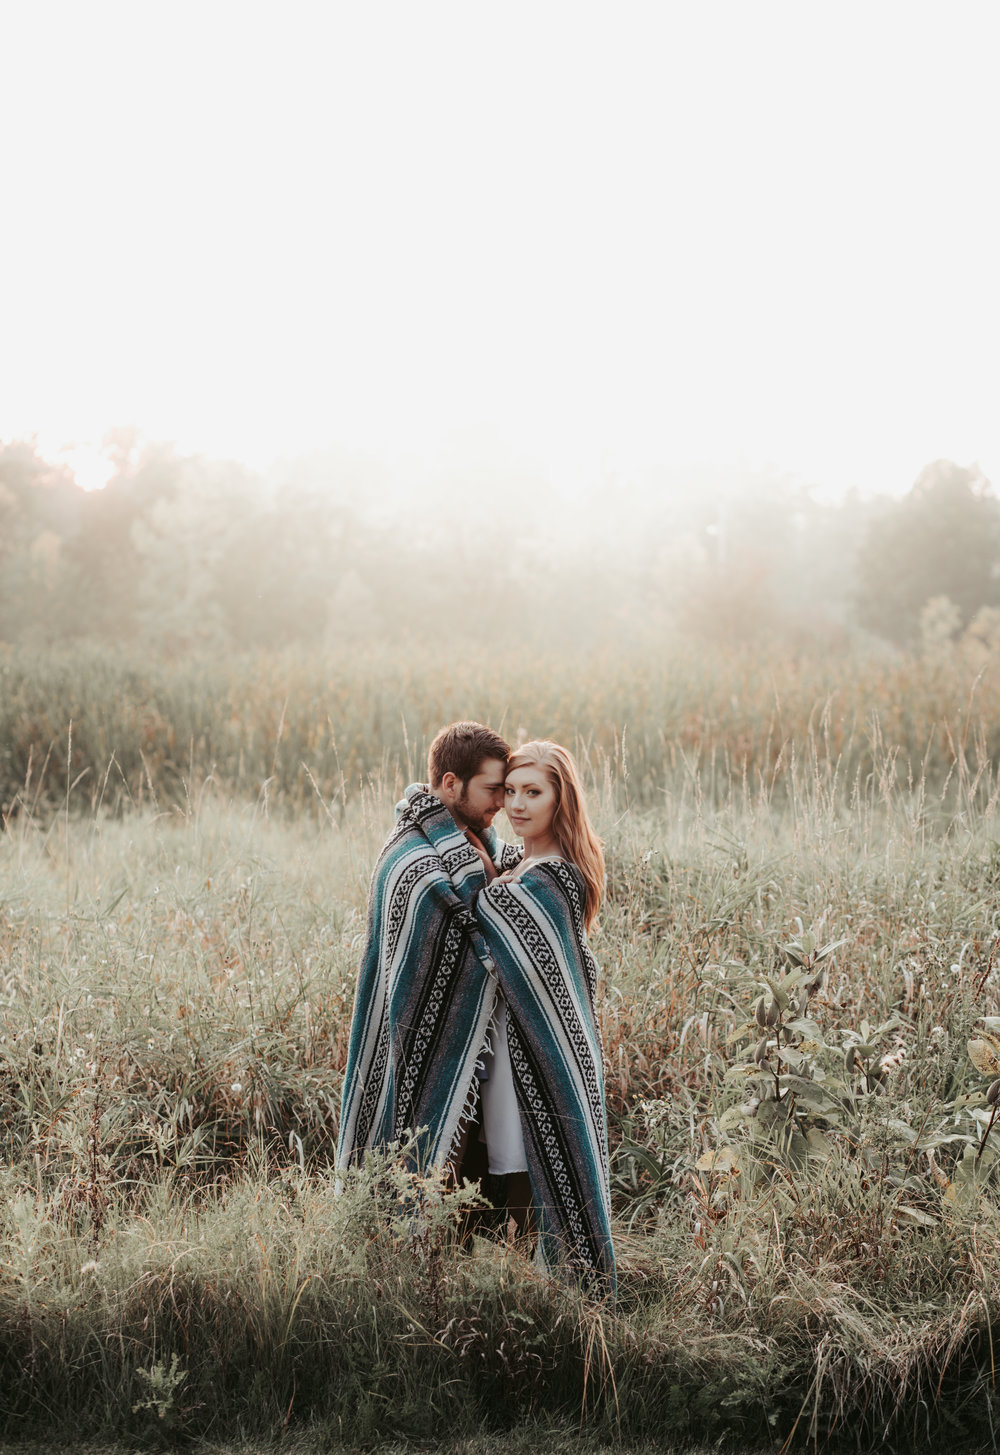 Golden Hour Engagement Session - Green Bay, Wi - Hove Photography LLC